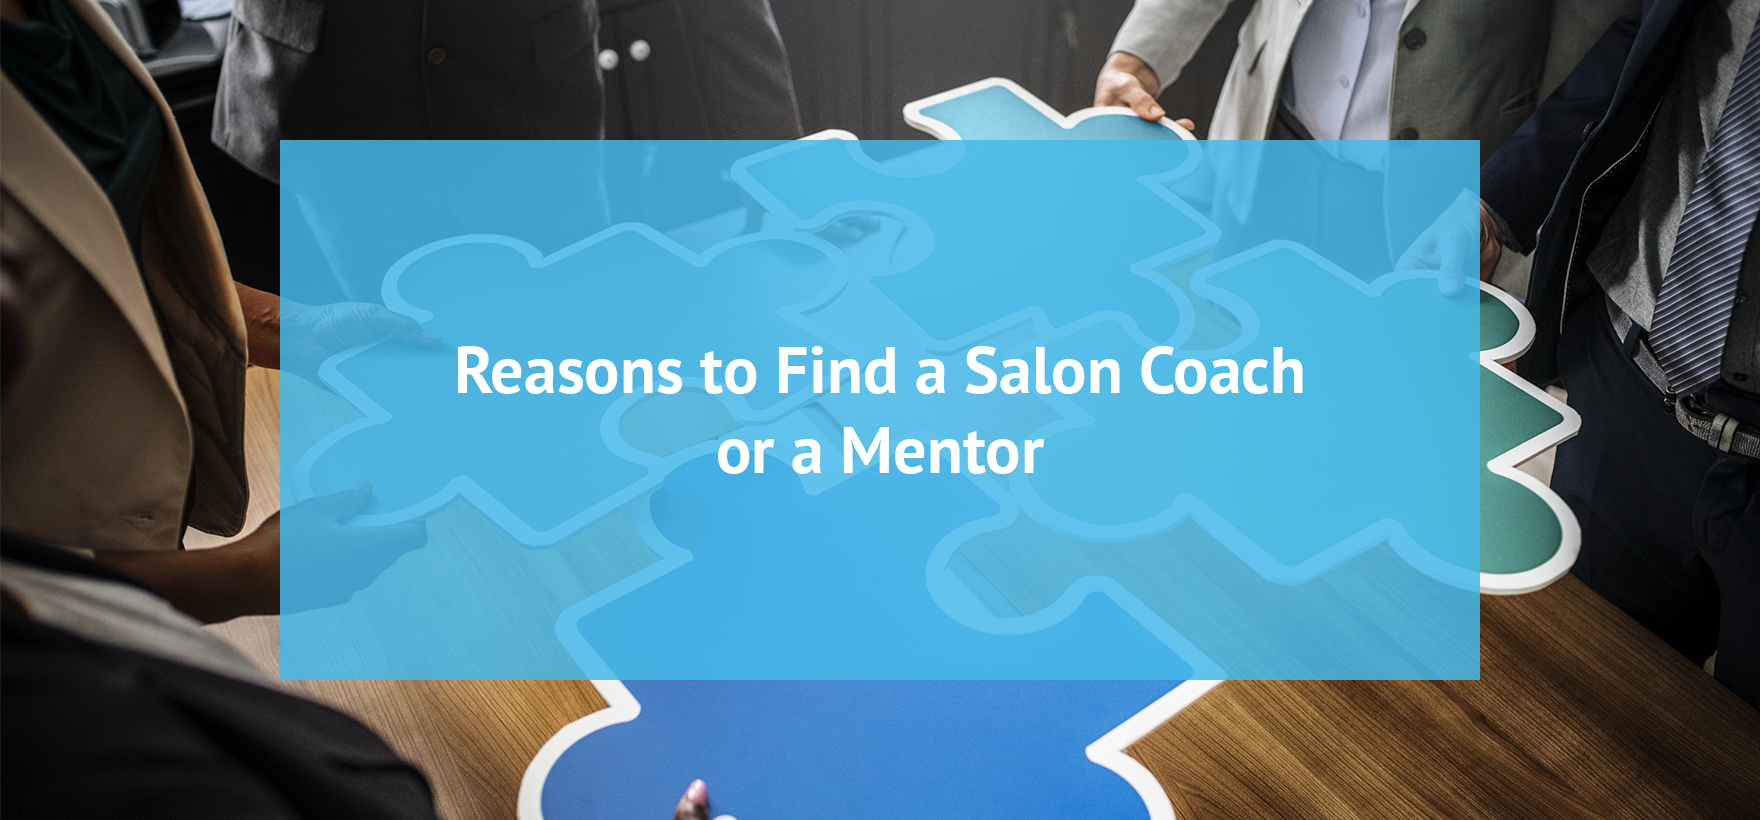 Reasons to Find a Salon Coach or a Mentor